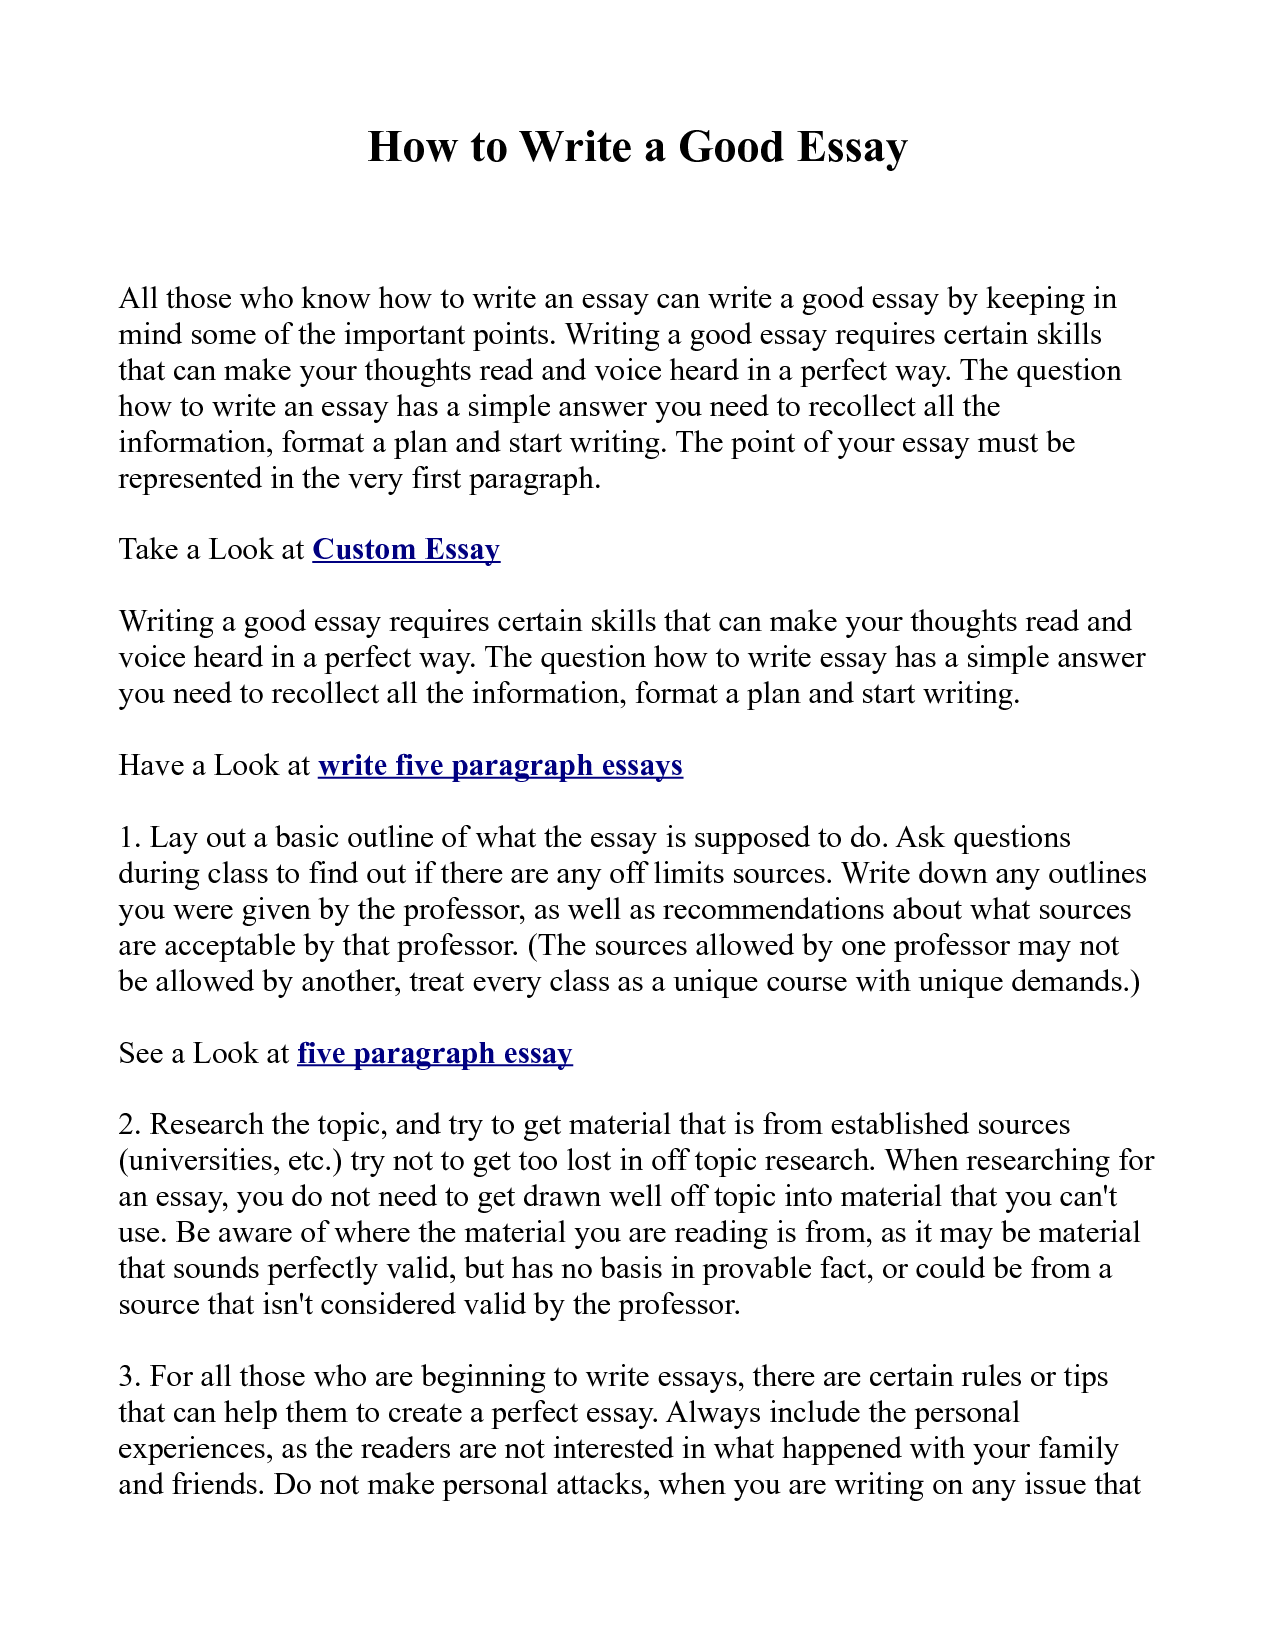 004 Exidscl How To Write Proper Essay Frightening A Good Argumentative Outline Narrative For College Full